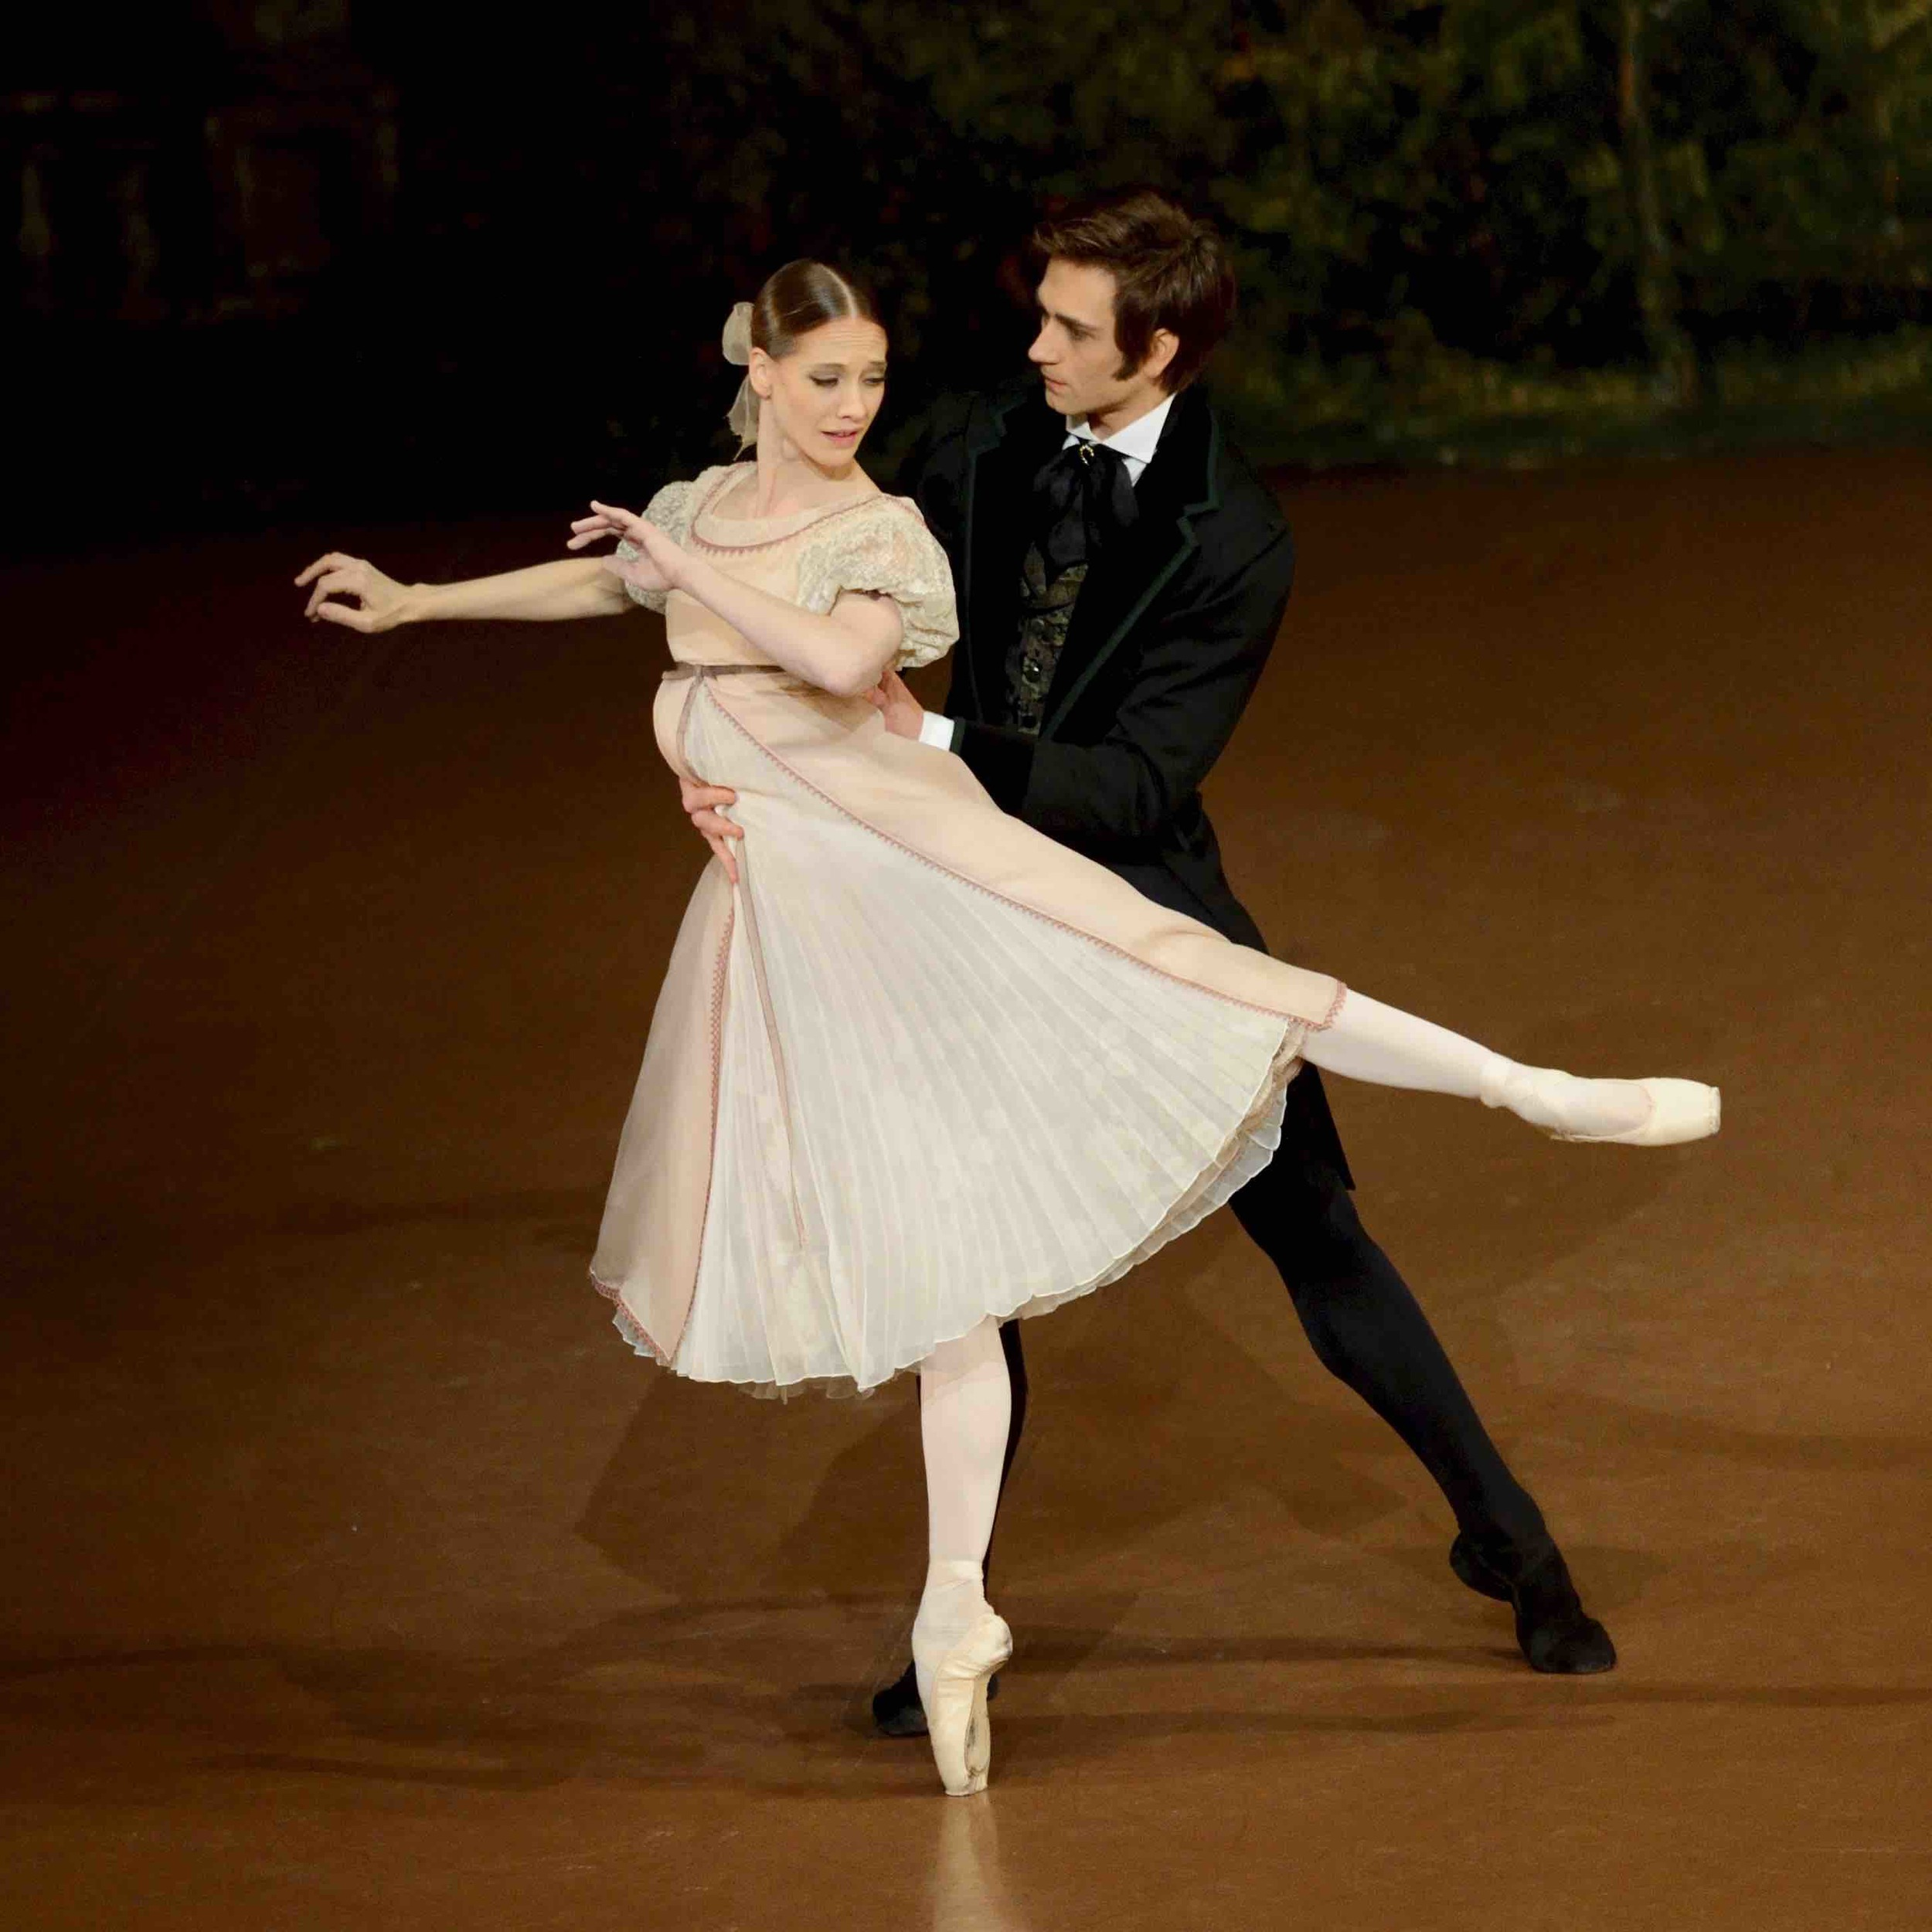 Alicia Amatriain and Friedemann Vogel in Onegin (c) Stuttgart Ballet